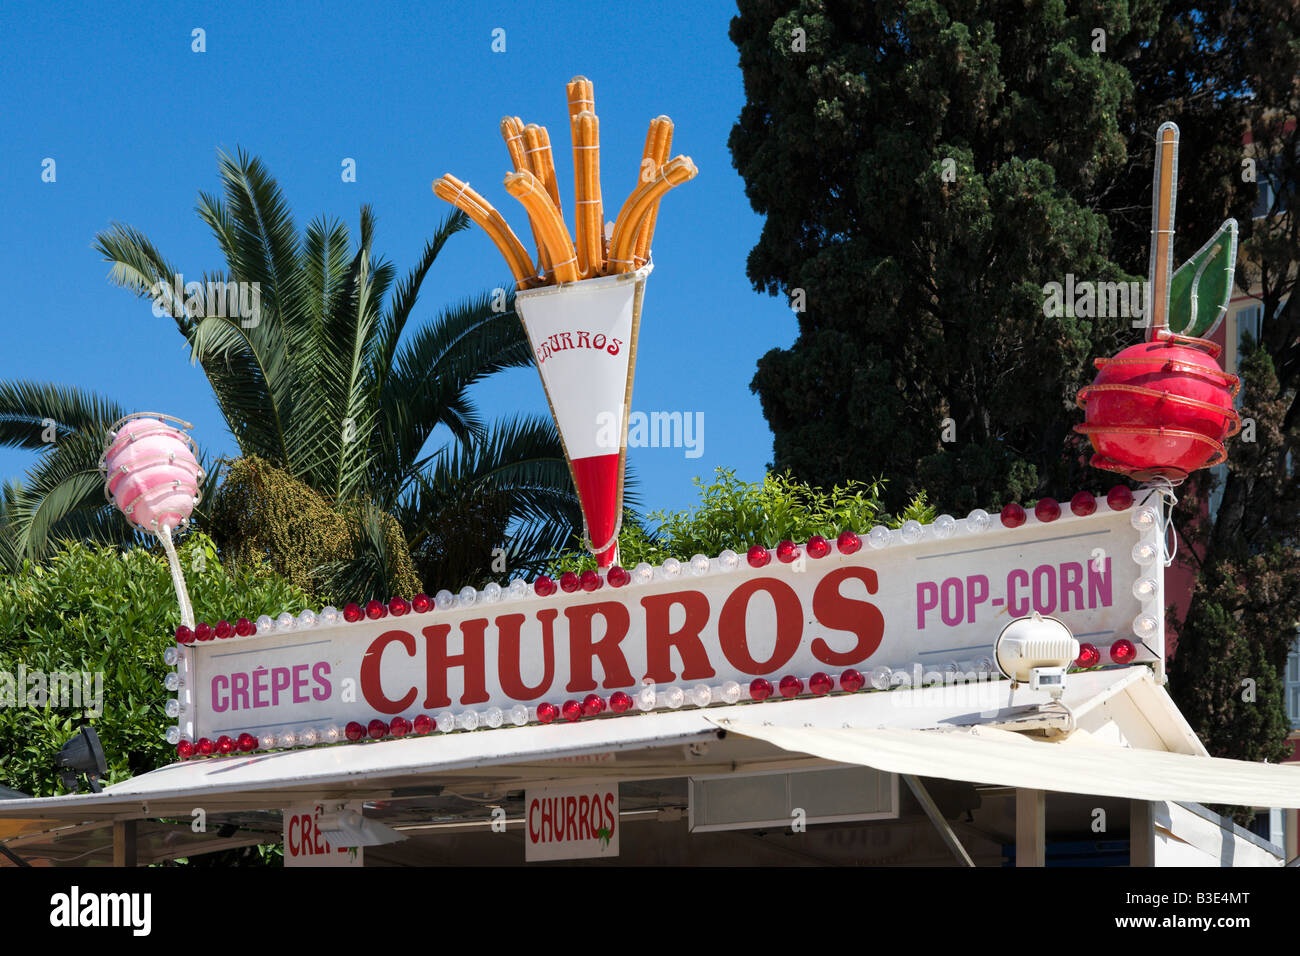 Churro and snack stand in Jardins Albert 1, Place Massena, Nice, Cote d'Azur, French Riviera, France - Stock Image